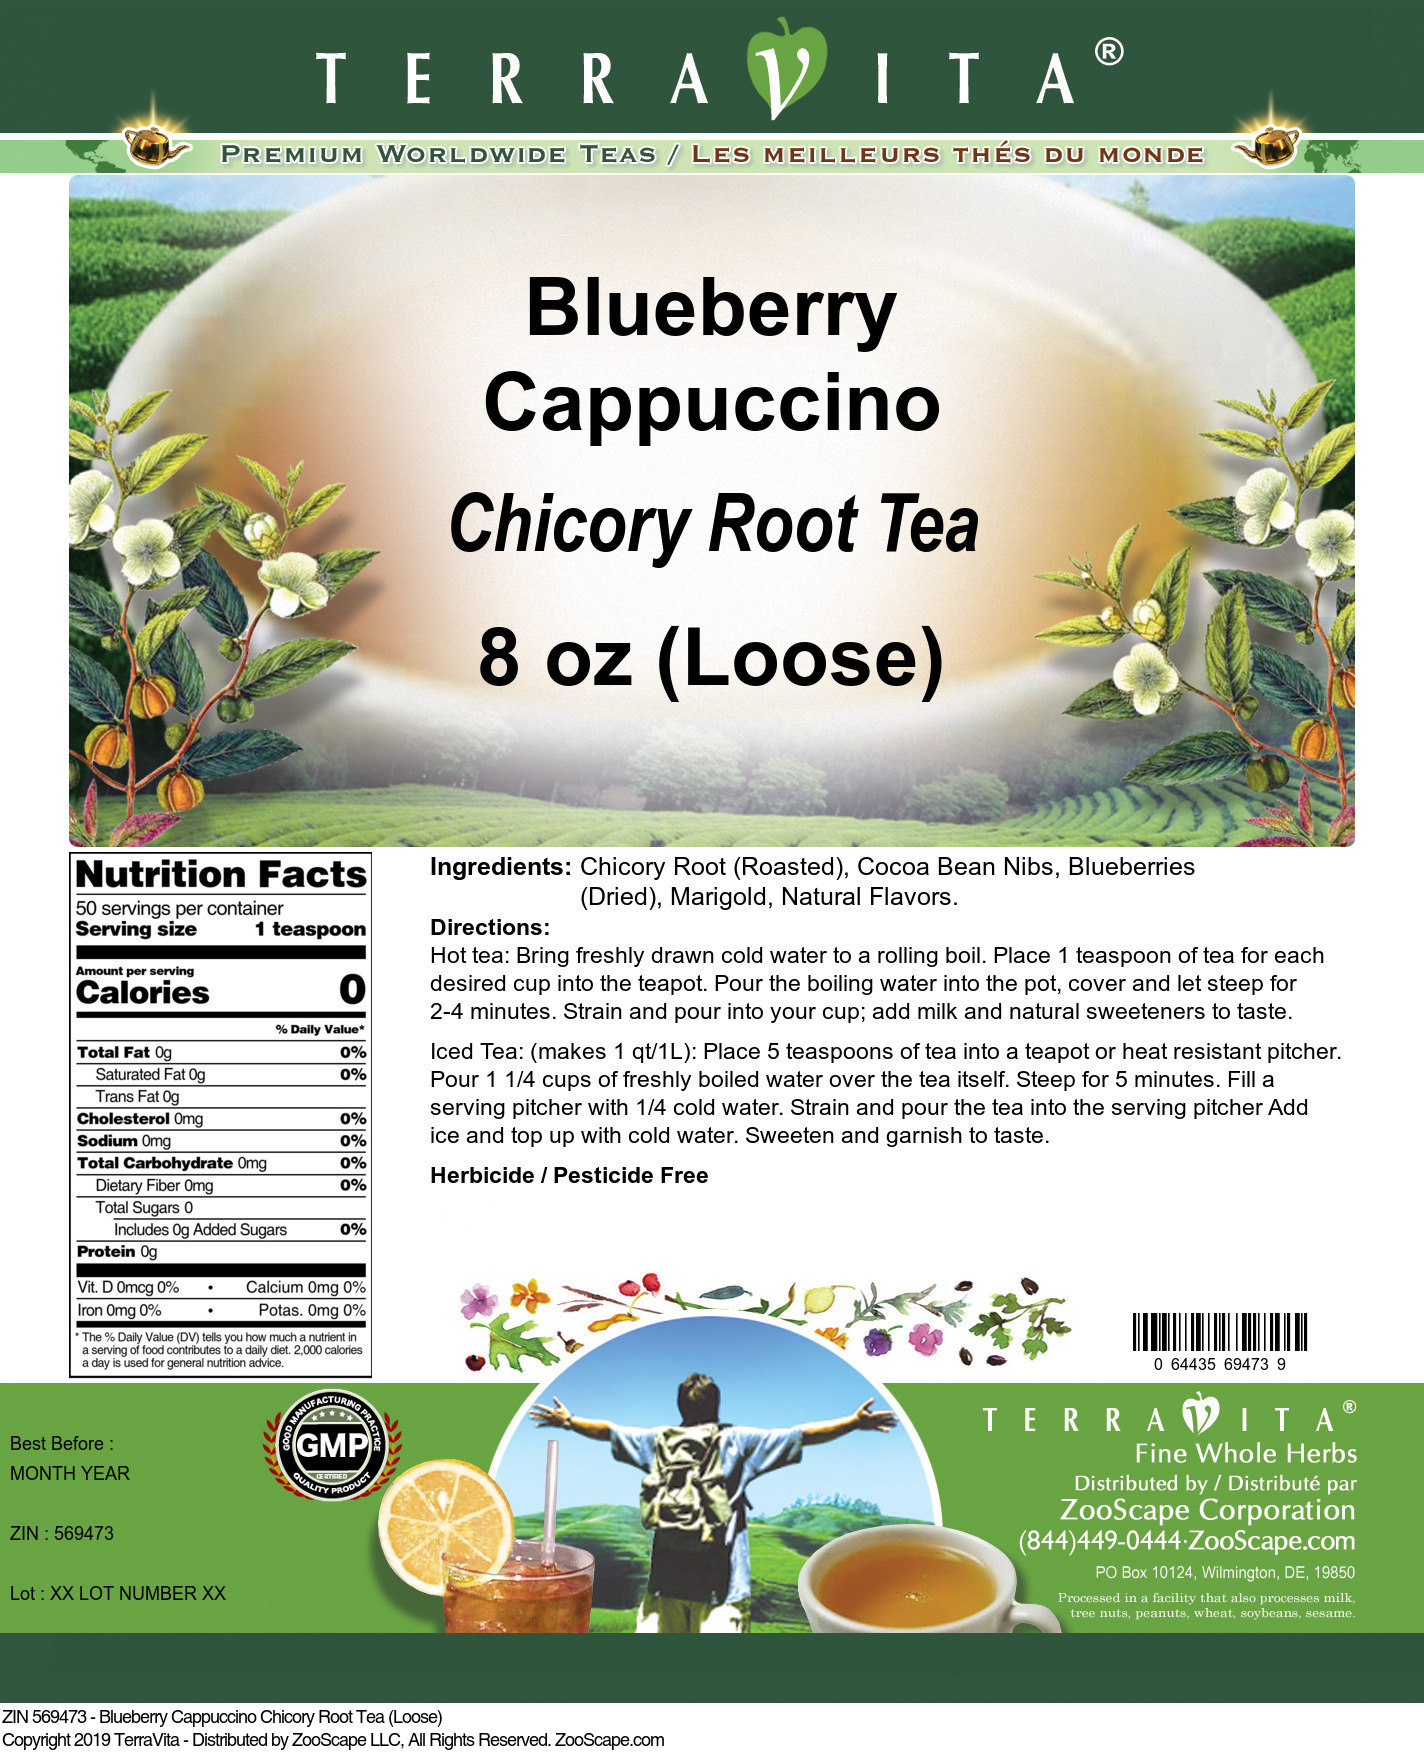 Blueberry Cappuccino Chicory Root